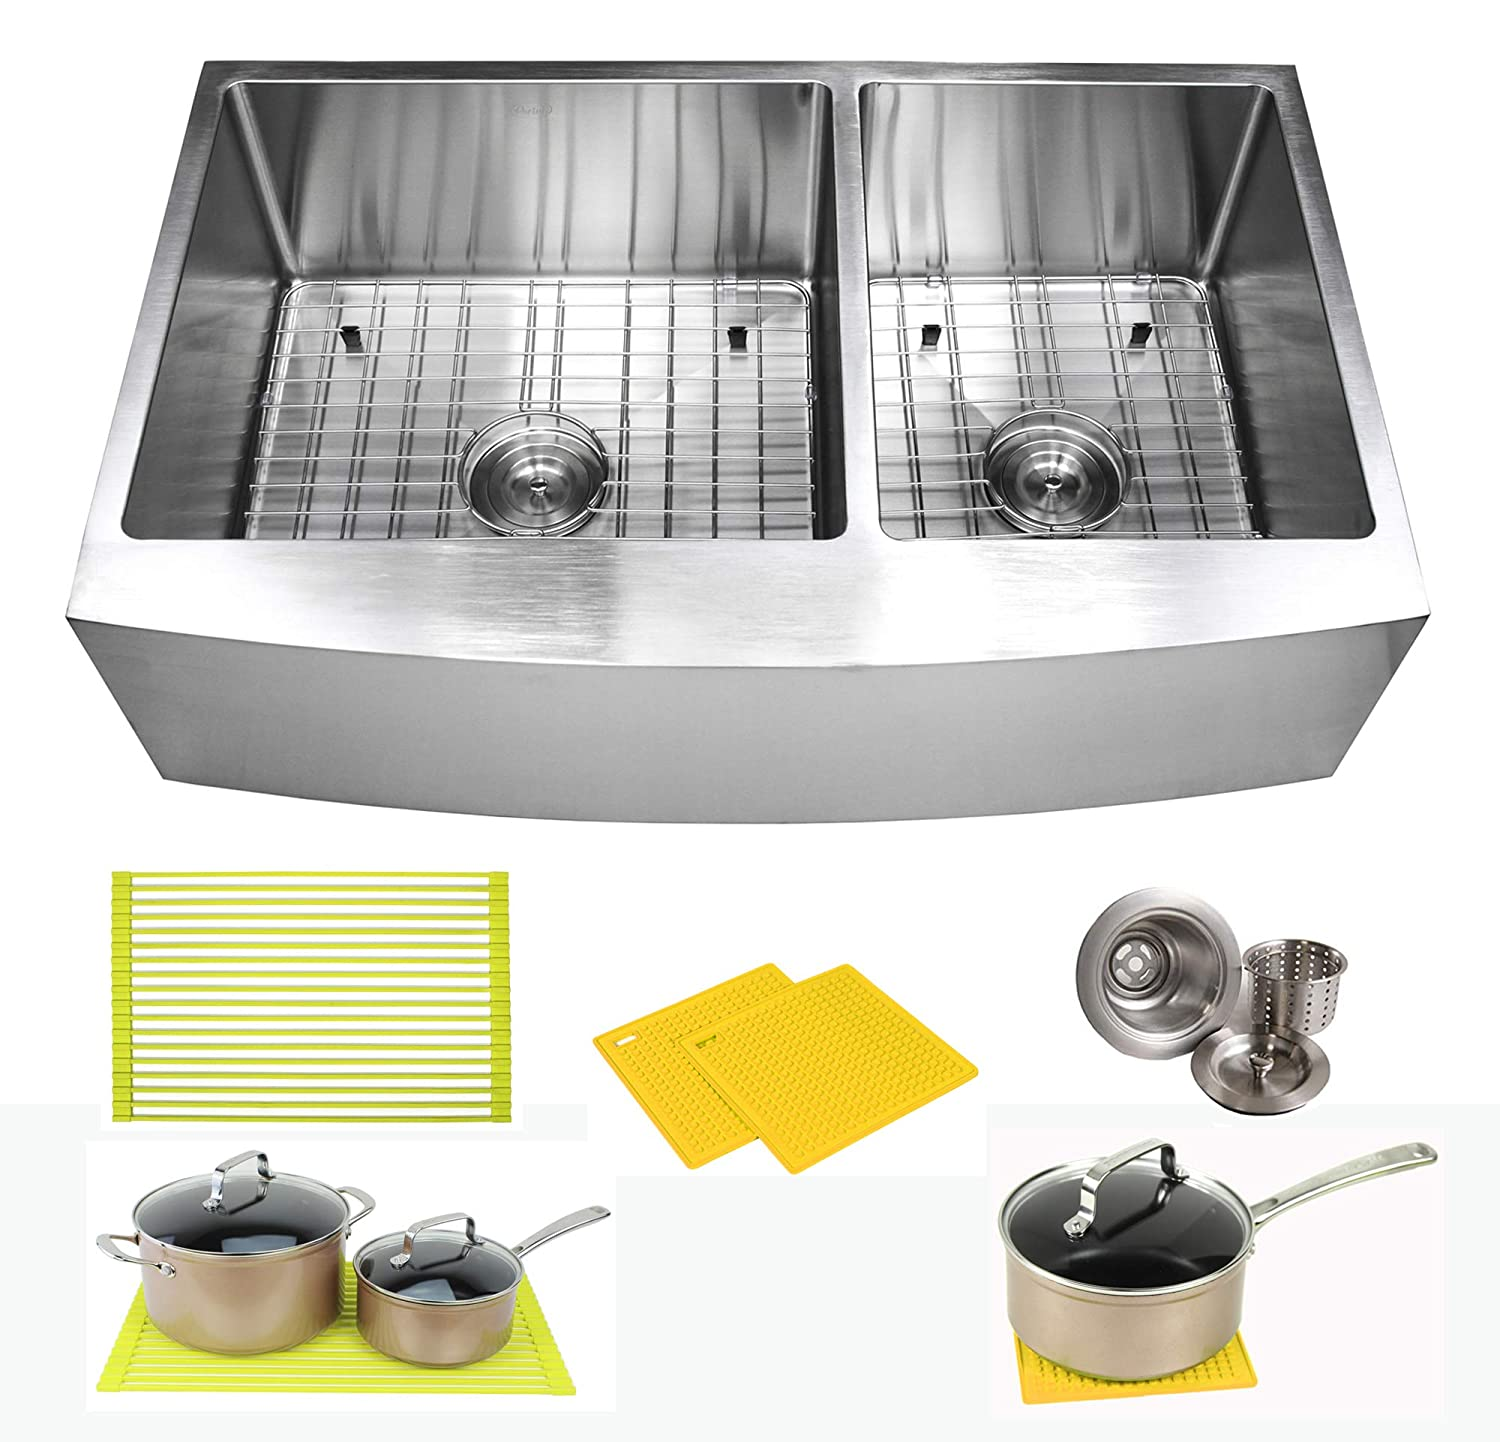 36 Inch Farmhouse Apron Front Stainless Steel Kitchen Sink Package 16 Gauge Curved Front Double Bowl Basin Complete Sink Pack Bonus Kitchen Accessories